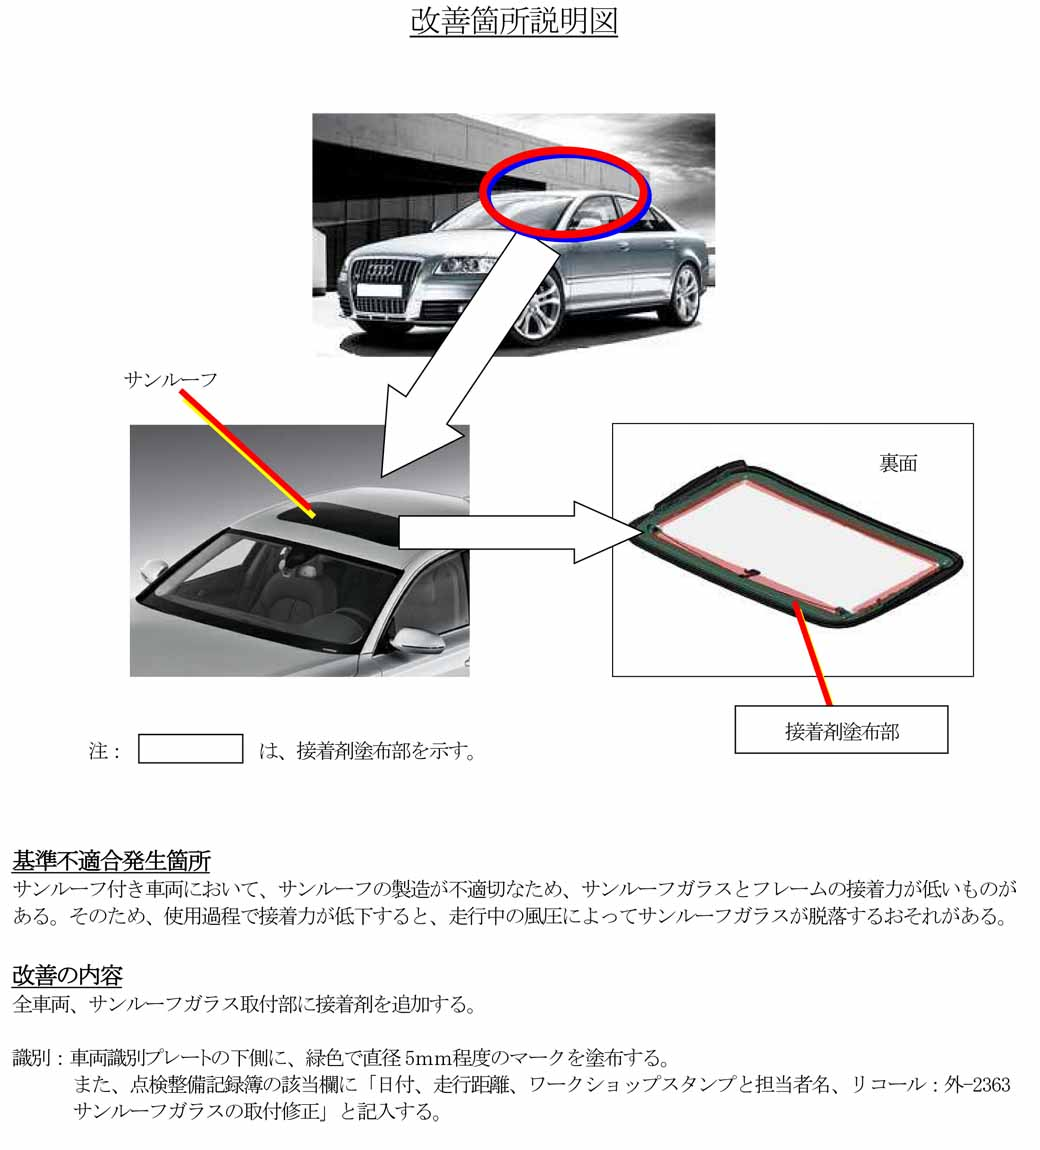 audi-audi-s8-etc-notification-of-the-recall-failure-of-window-glass-sunroof-a-total-of-274-units20160831-1